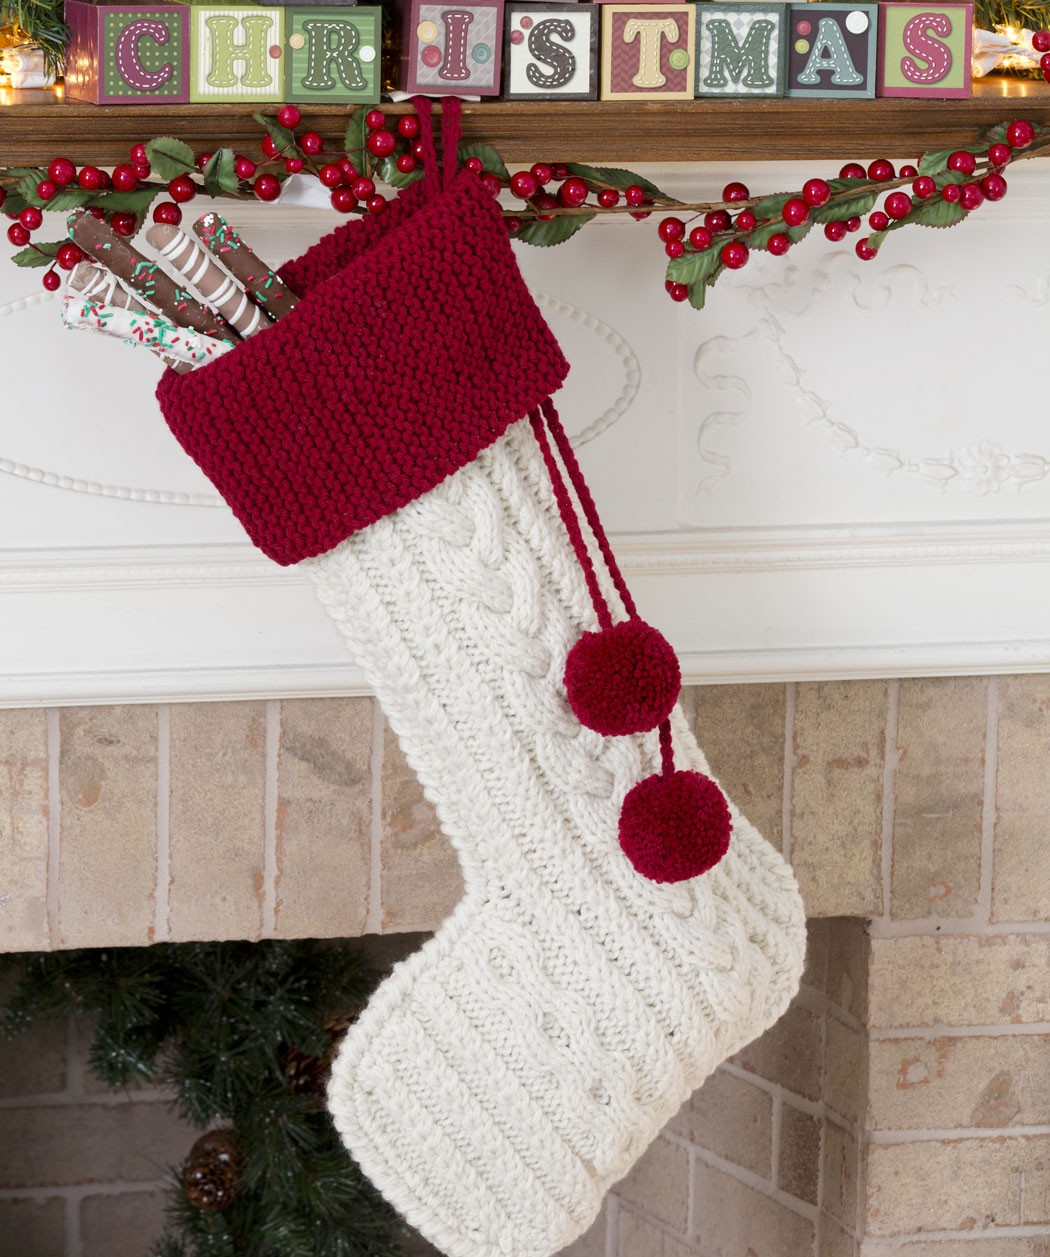 Knit Christmas Stocking Patterns Free : Knitted Christmas Stocking Patterns A Knitting Blog